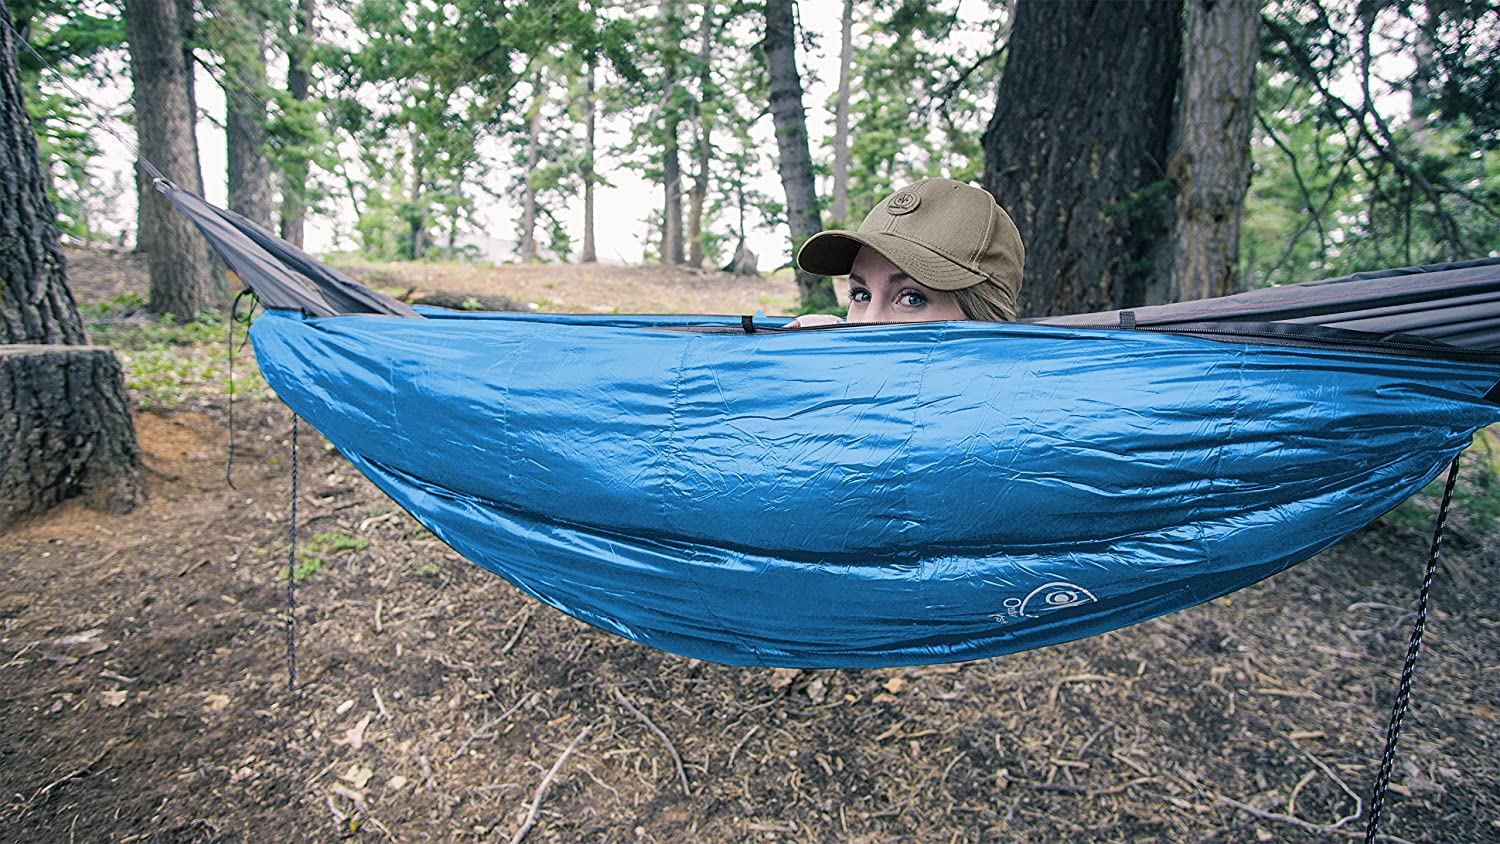 Outdoor Vitals OV-Roost 40°F UnderQuilt / Sleeping Bag, Use As Ultralight UnderQuilt, Sleeping Bag, or Double Bag